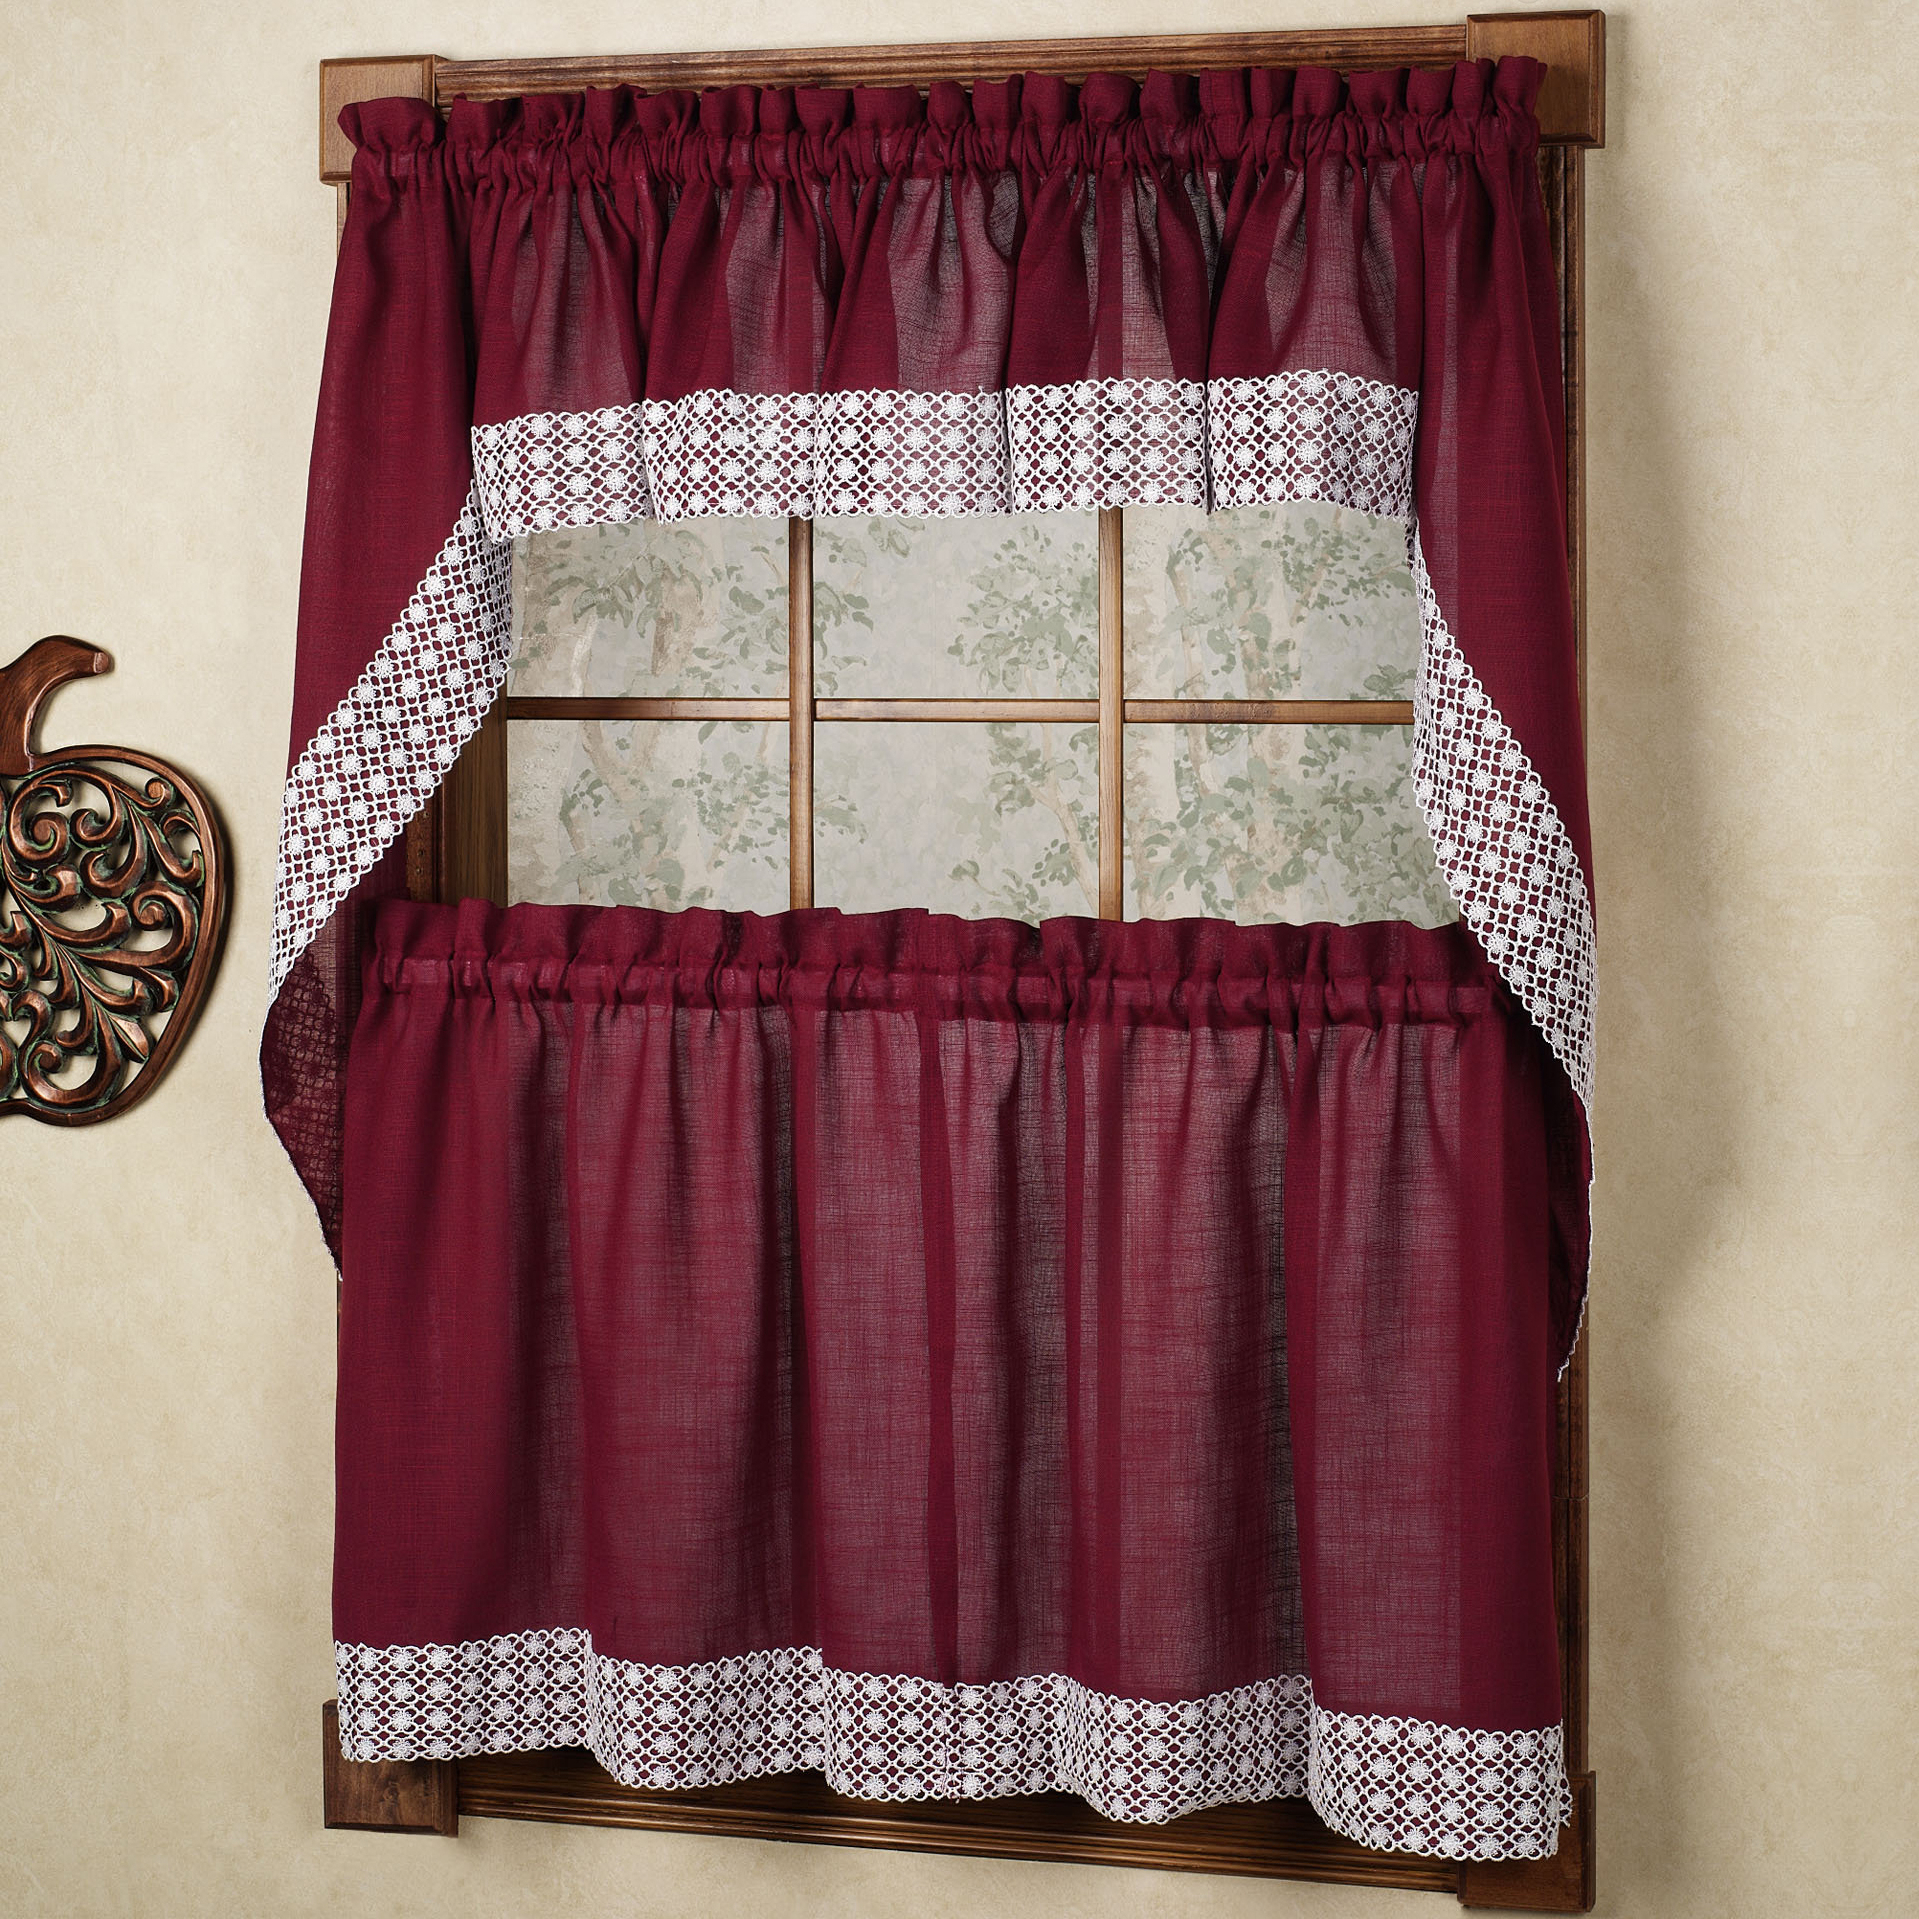 French Vanilla Country Style Curtain Parts With White Daisy Lace Accent Within Most Current Details About Salem Kitchen Curtain – Burgundy W/white Lace Trim – Lorraine  Home Fashions (View 10 of 20)